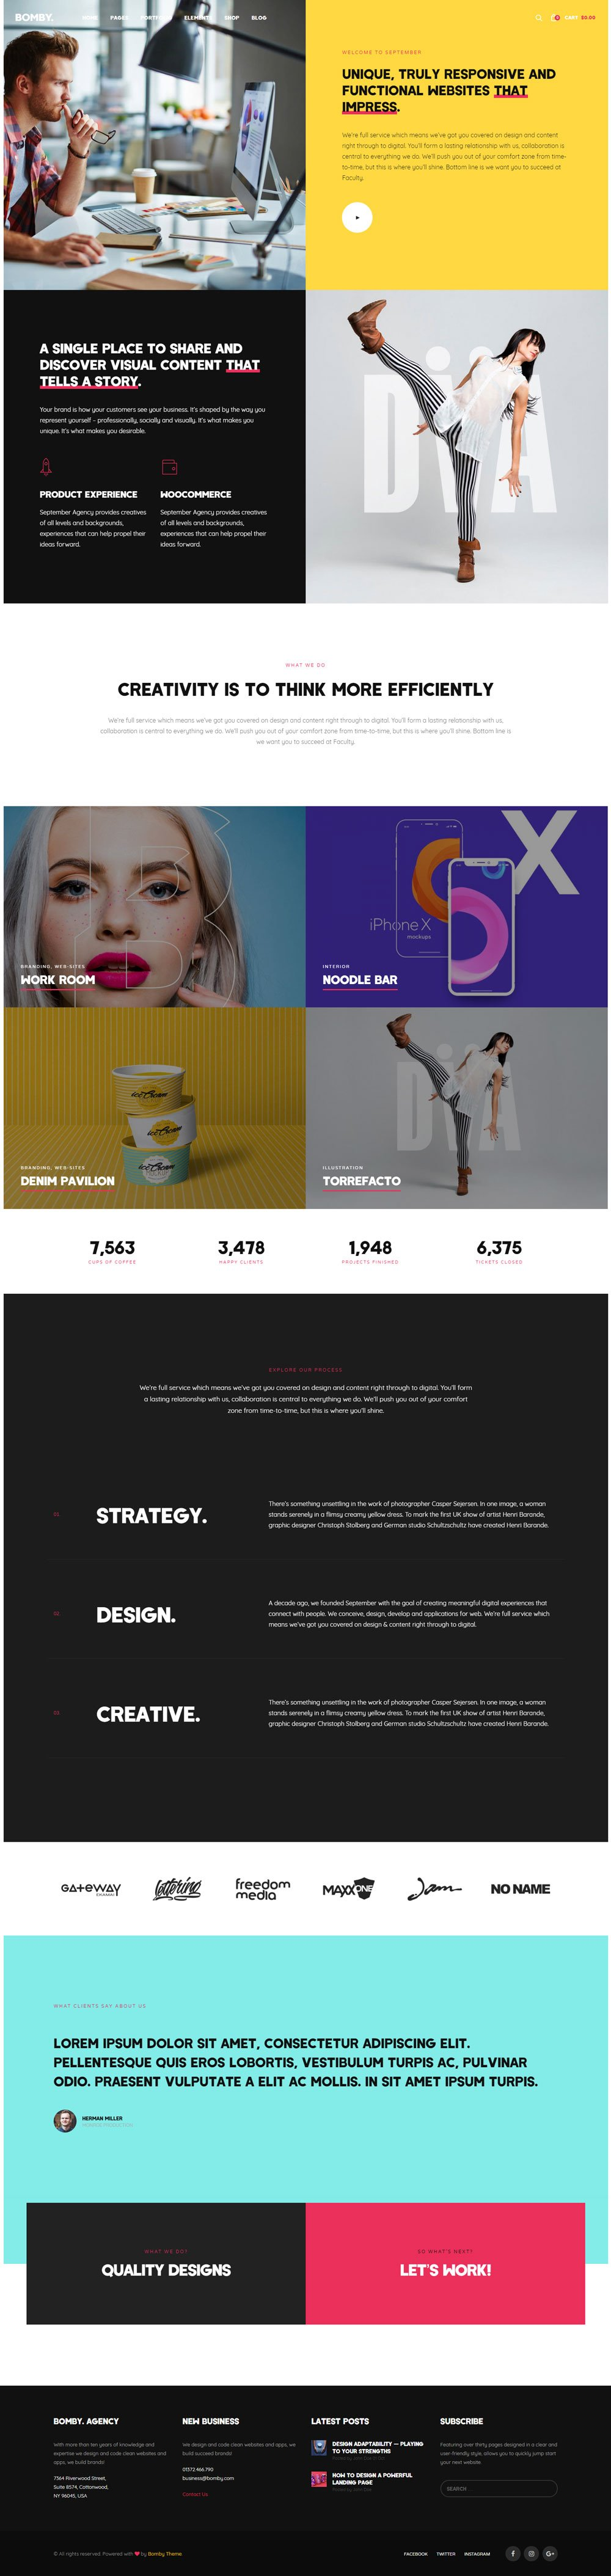 Best-WordPress-Themes-and-Web-Design-for-Creatives-006